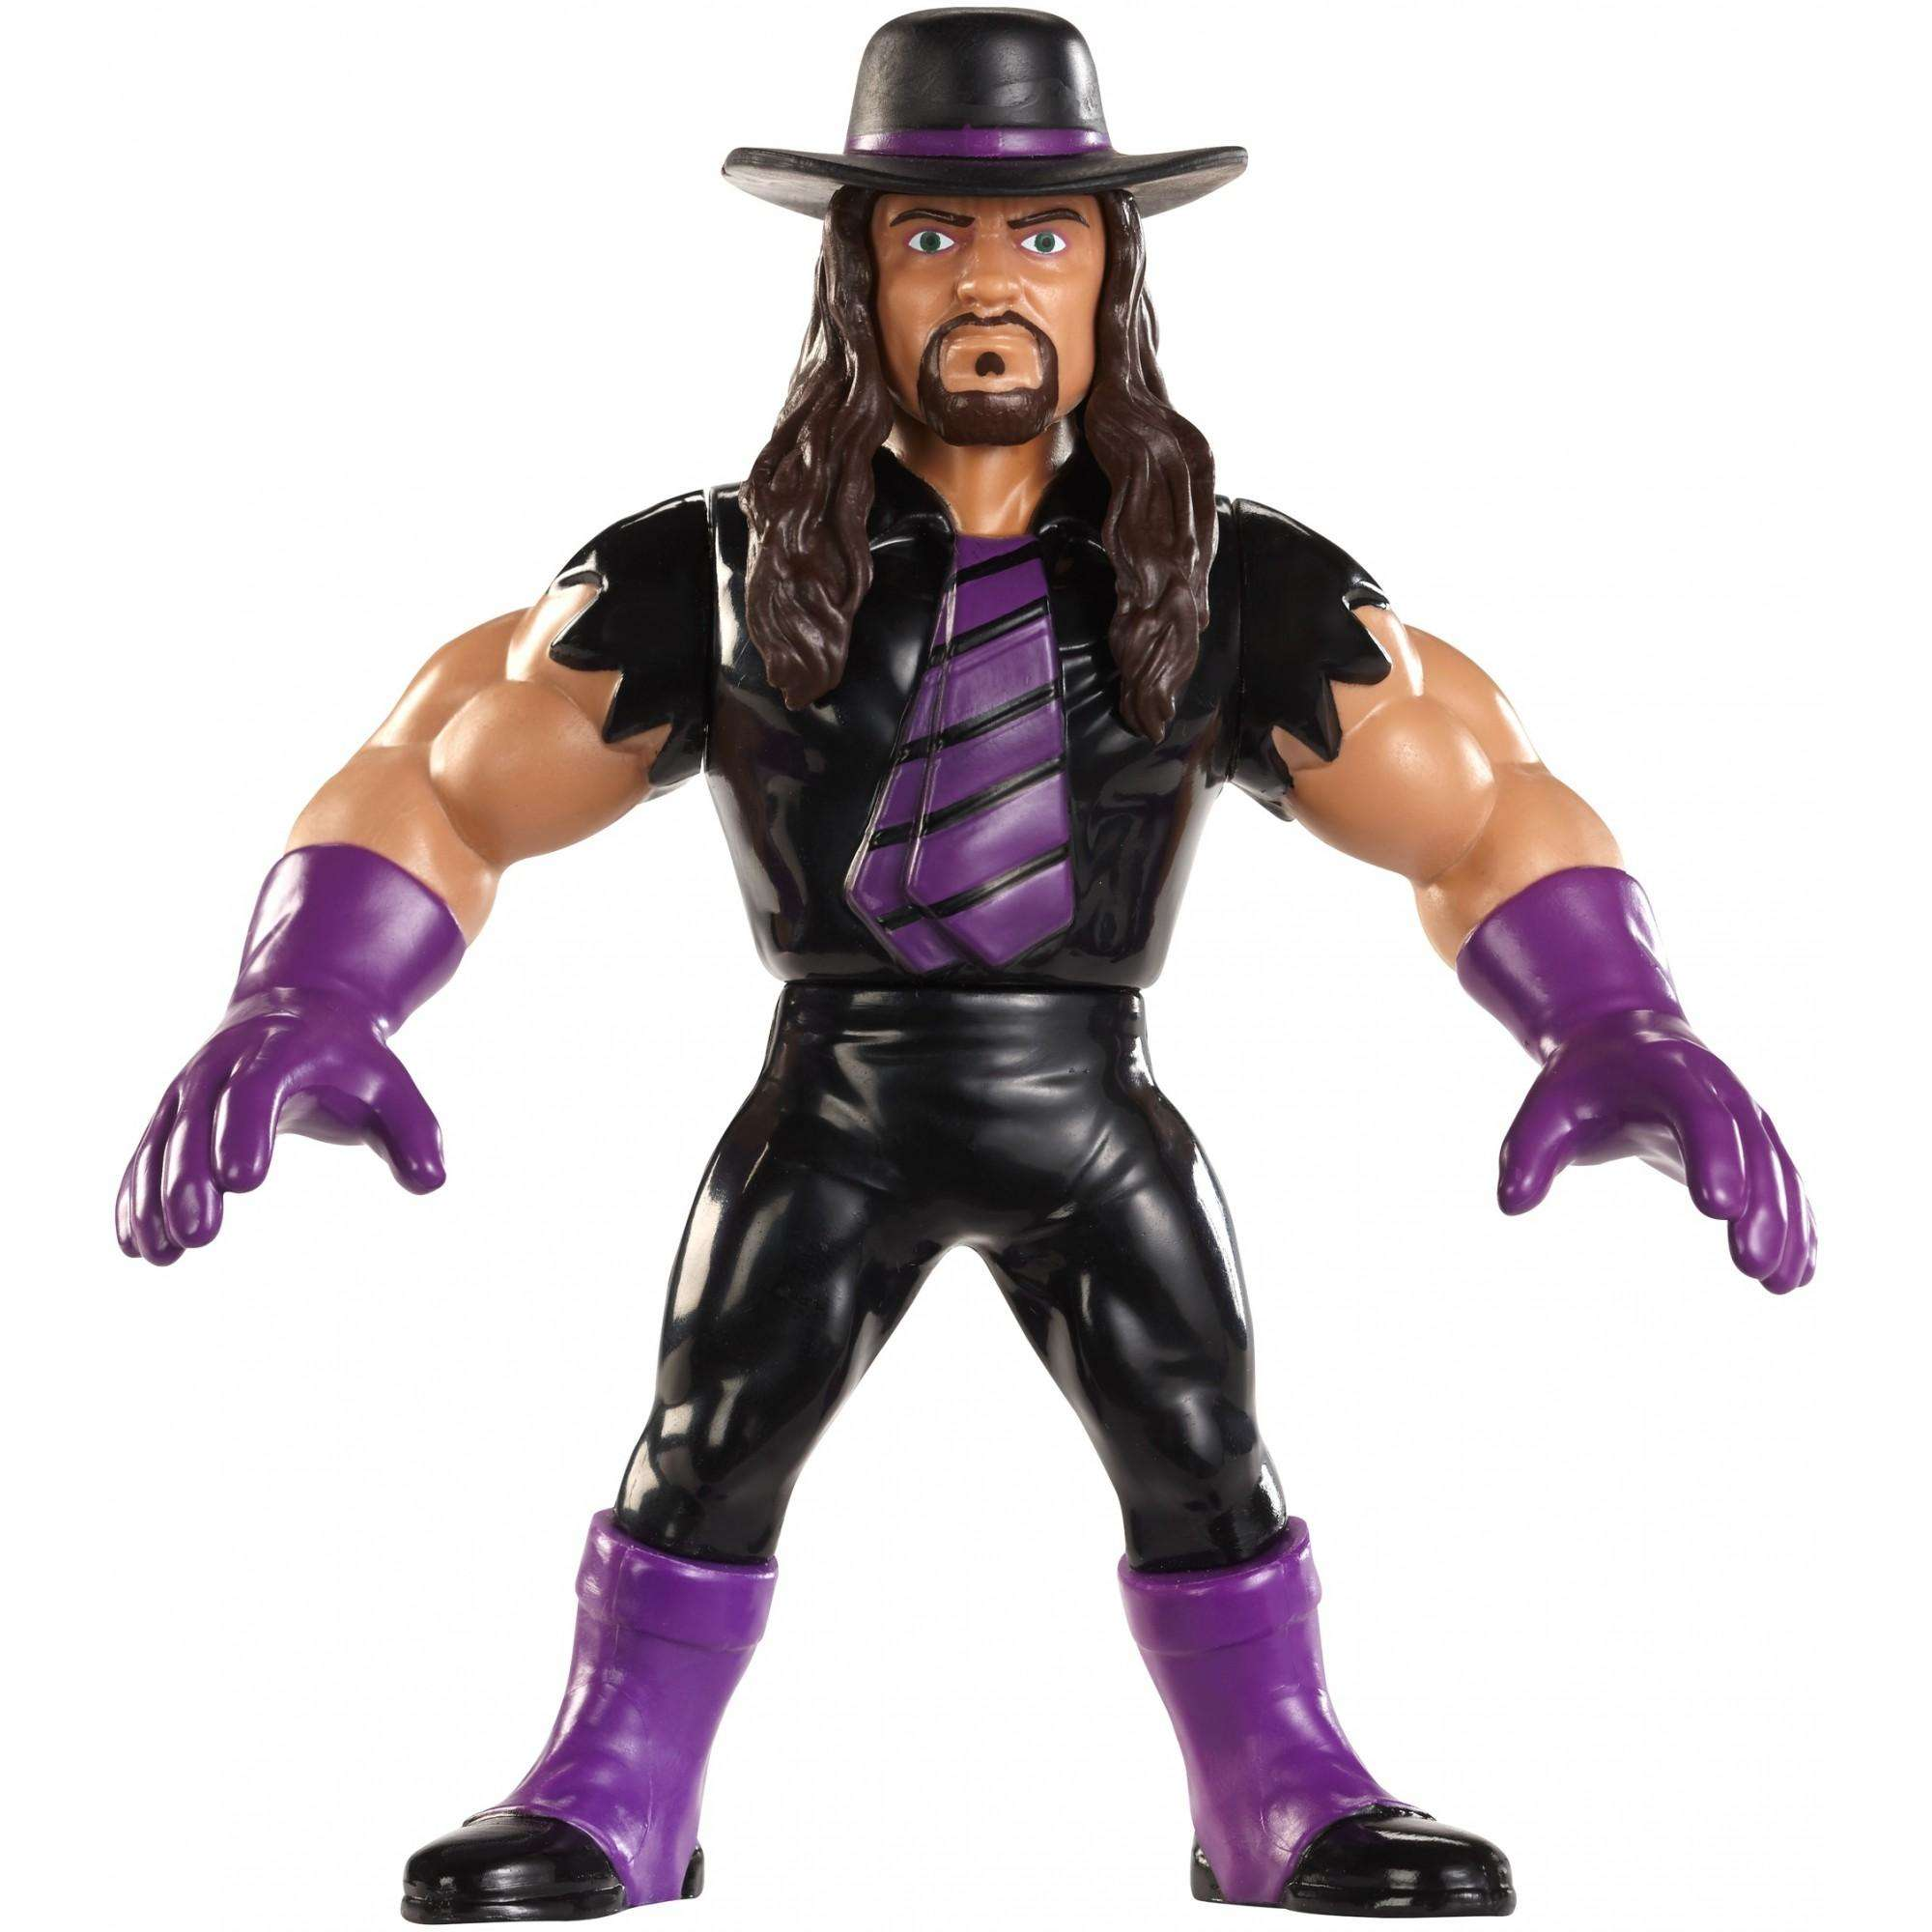 WWE Undertaker Retro Figure by Mattel